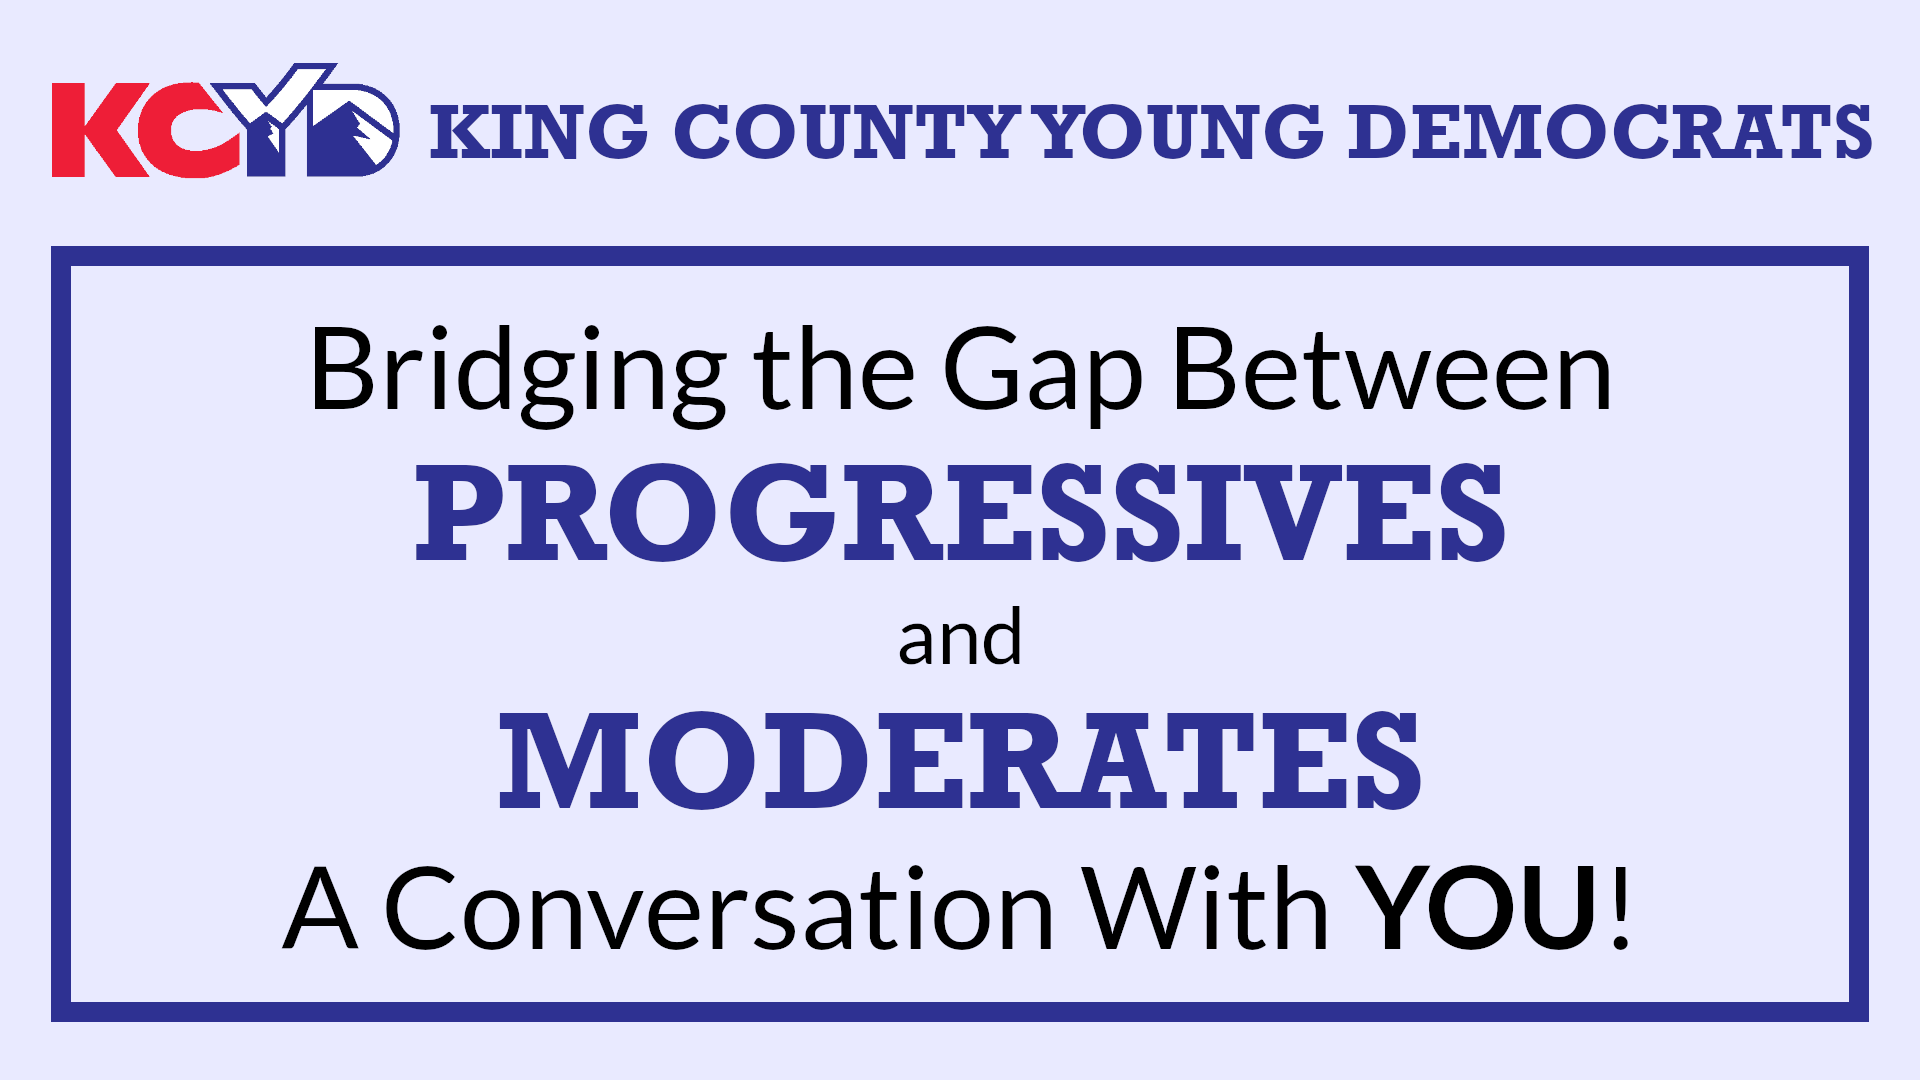 Bridging the Gap Between Progressives and Moderates; a Conversation With YOU!